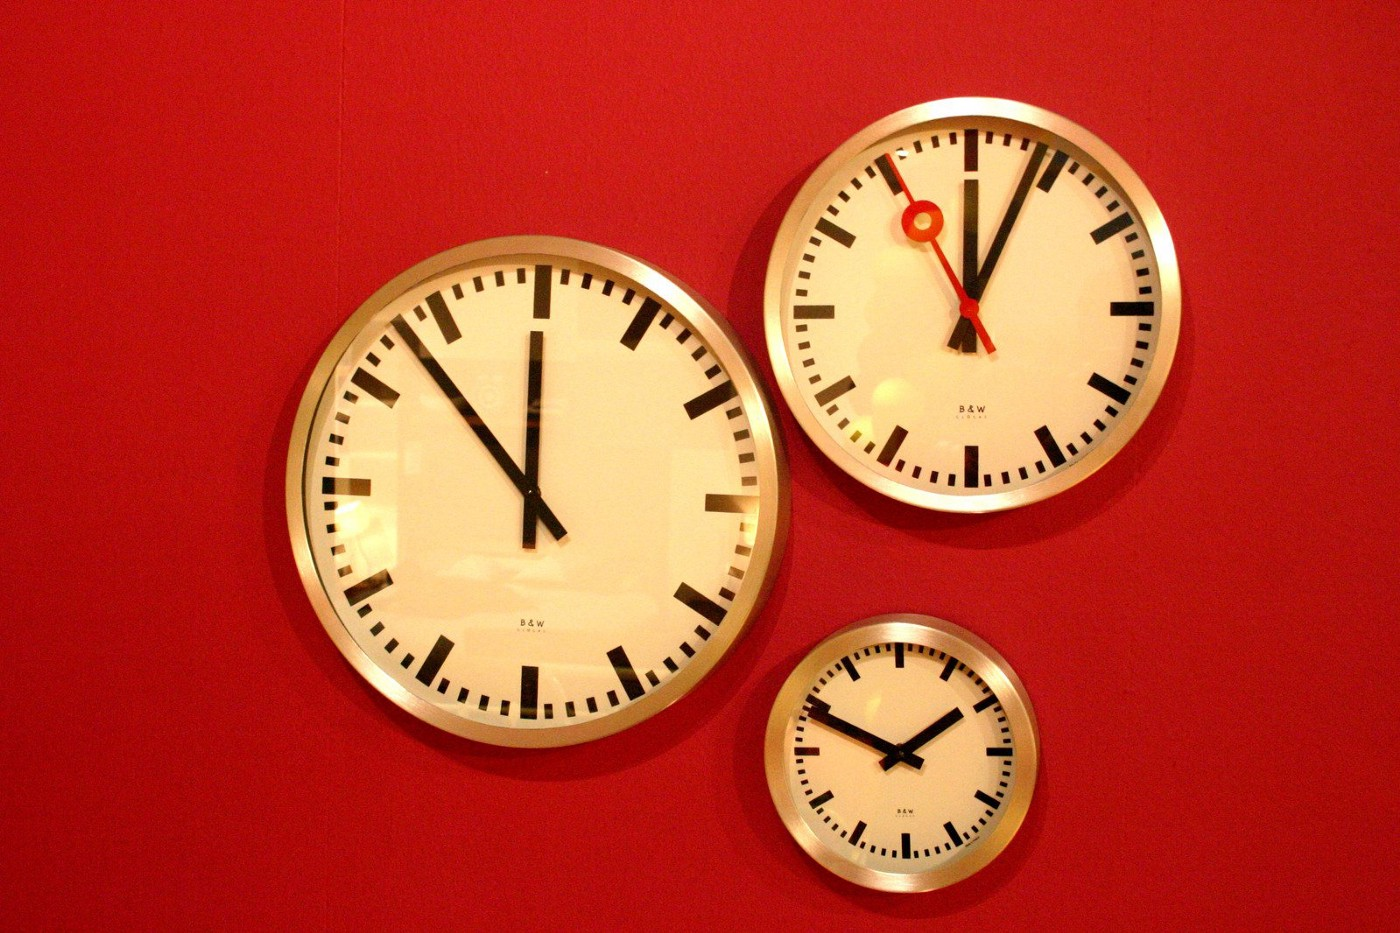 Three analog clocks of various sizes positioned against a red background.